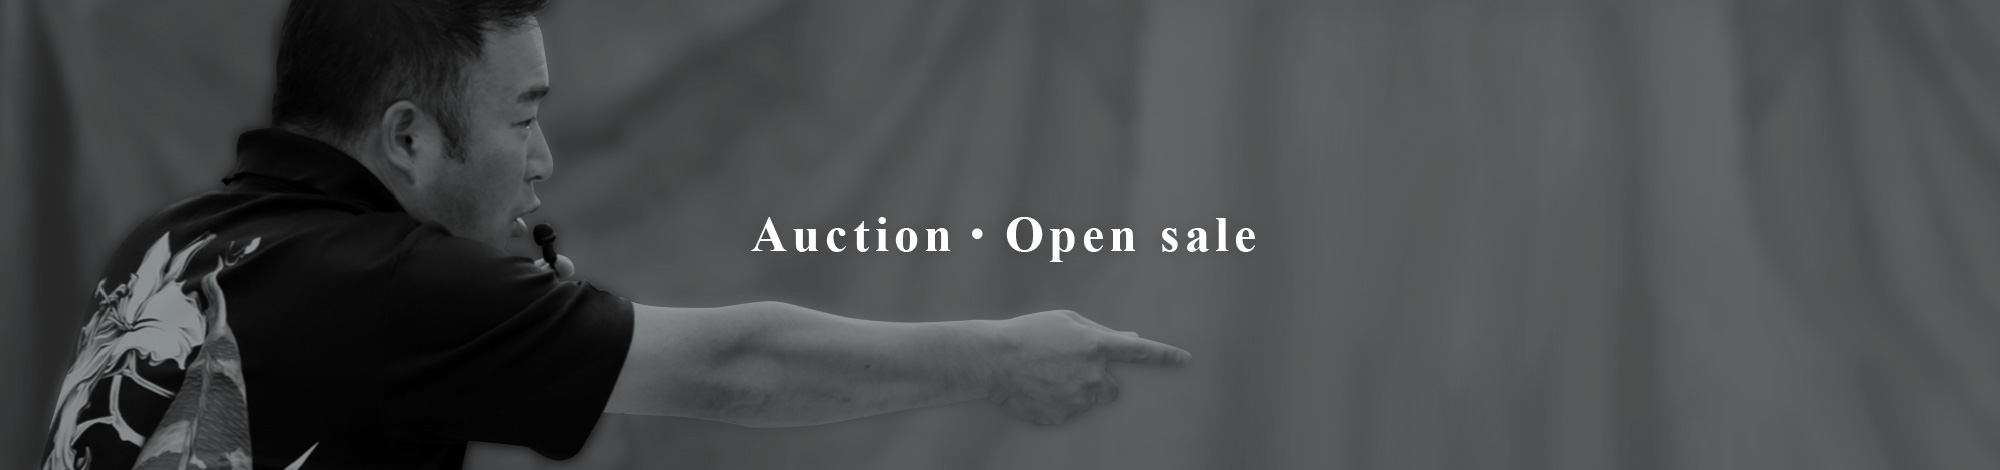 Auction Spot sale fair